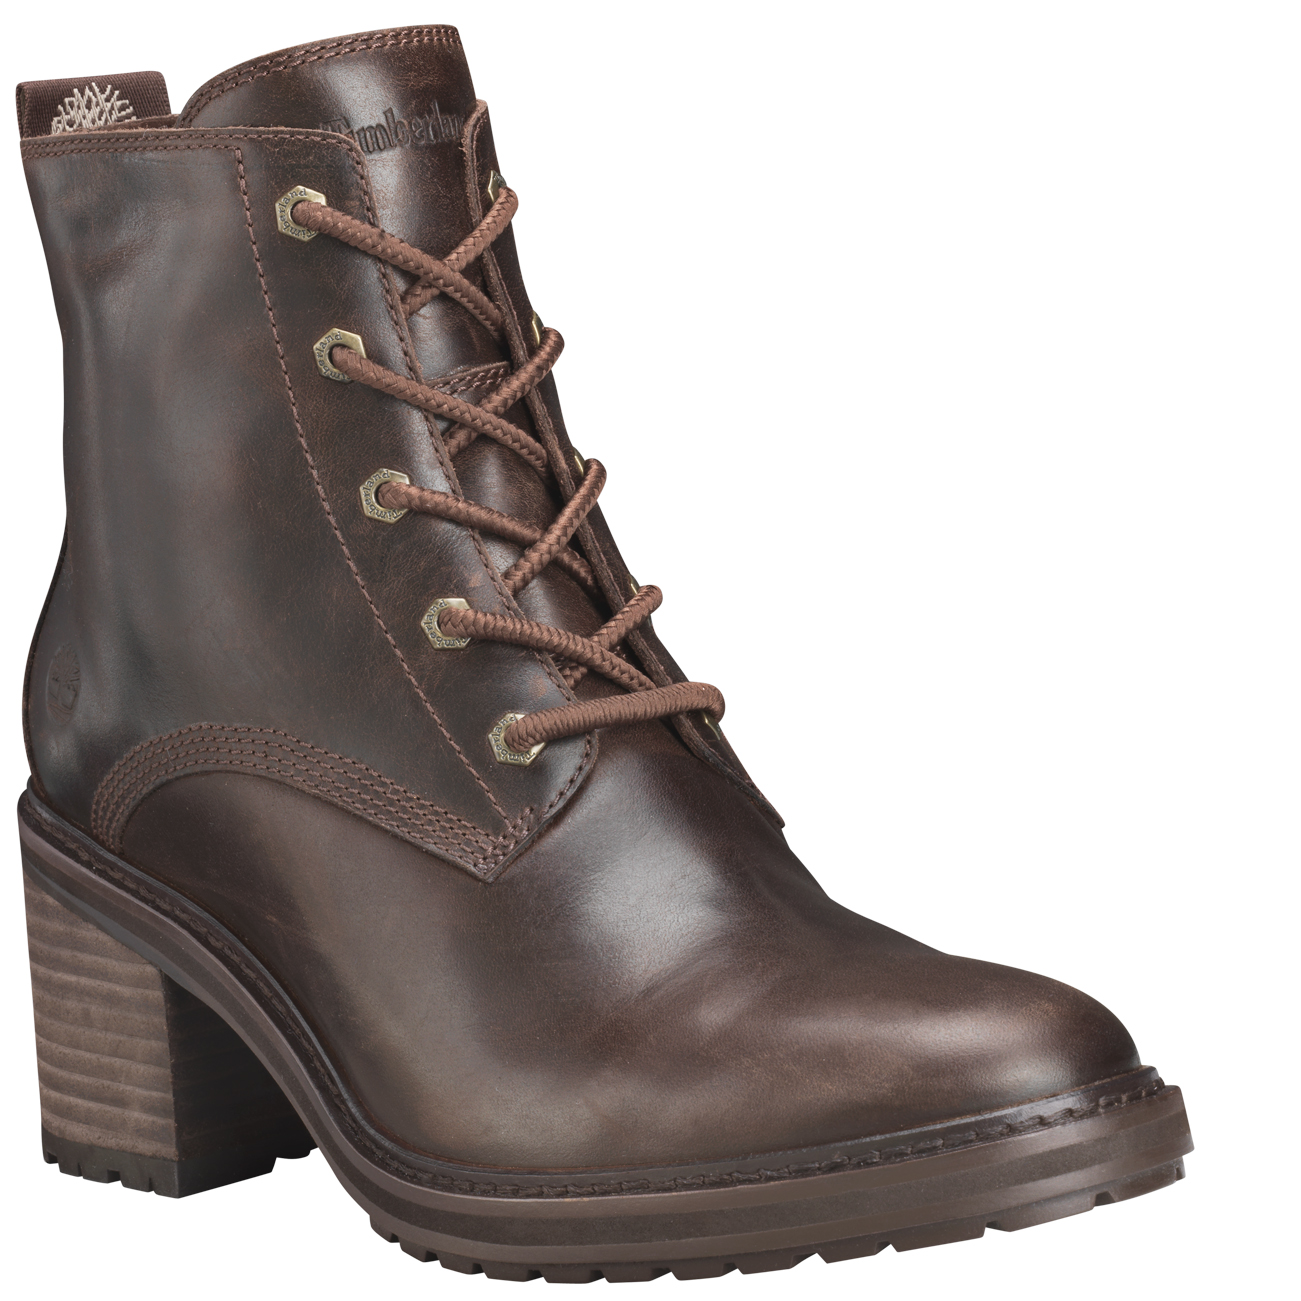 Timberland Sienna High Lace Up